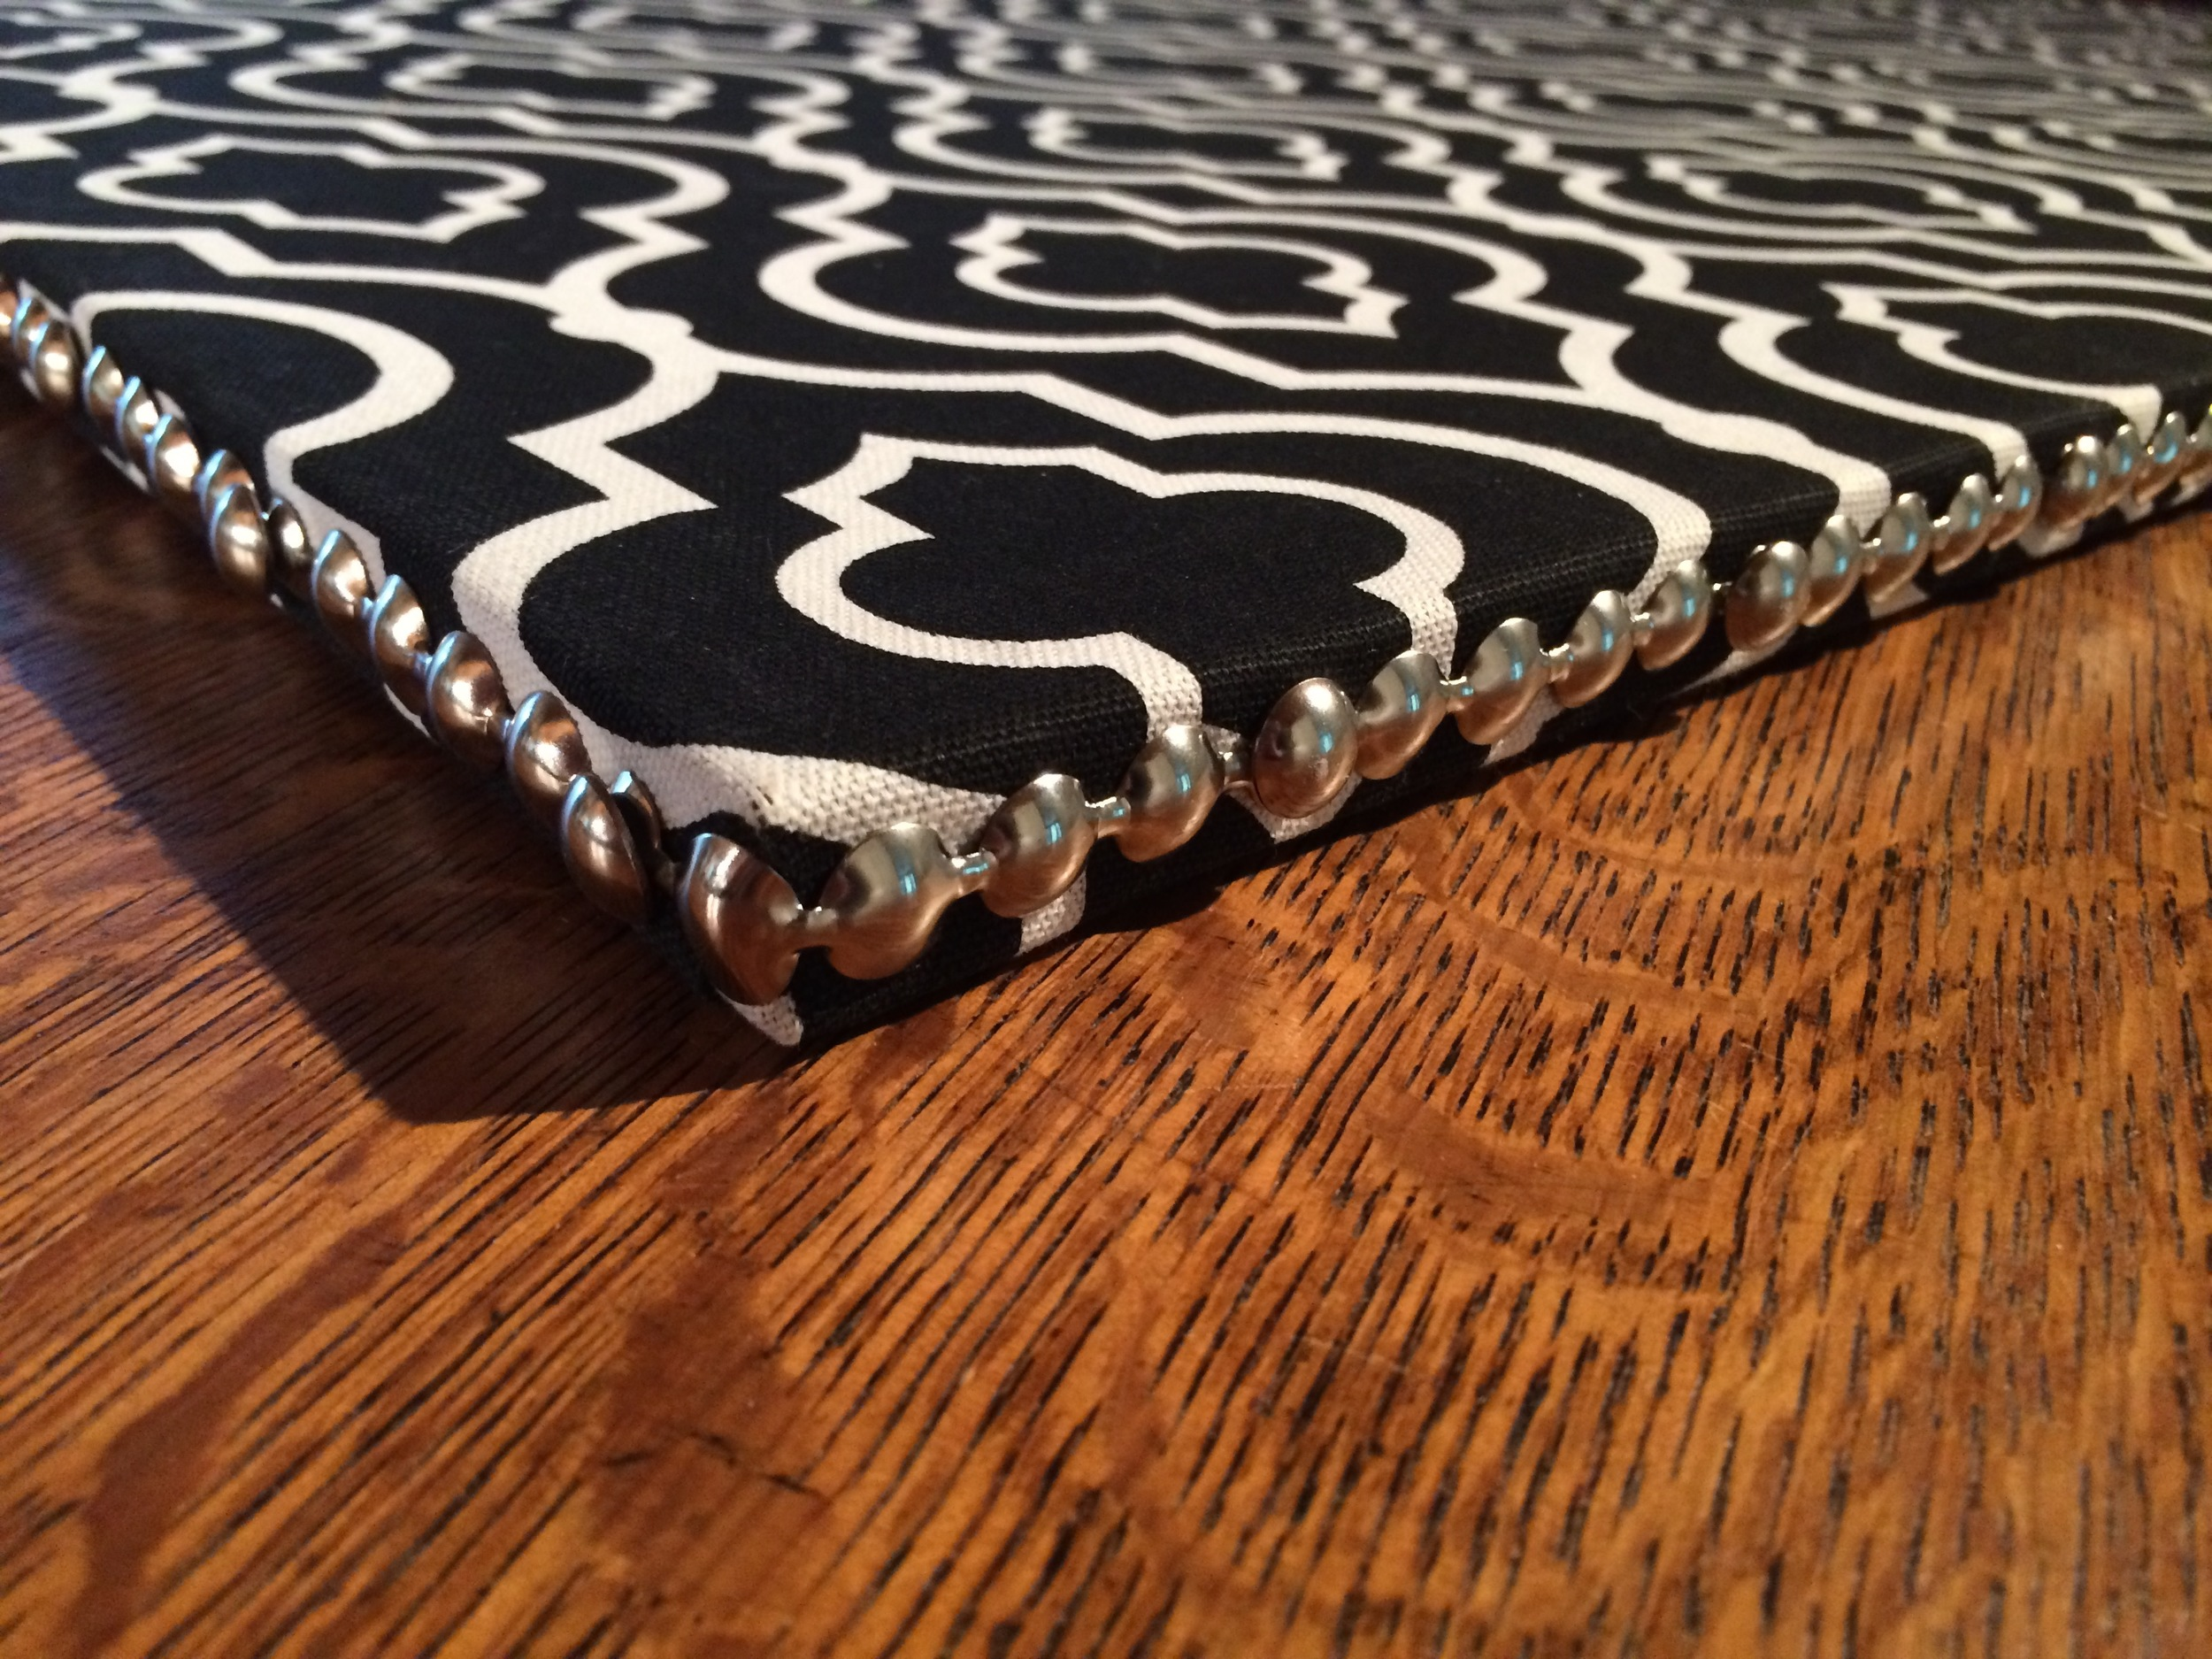 Nailhead bling!